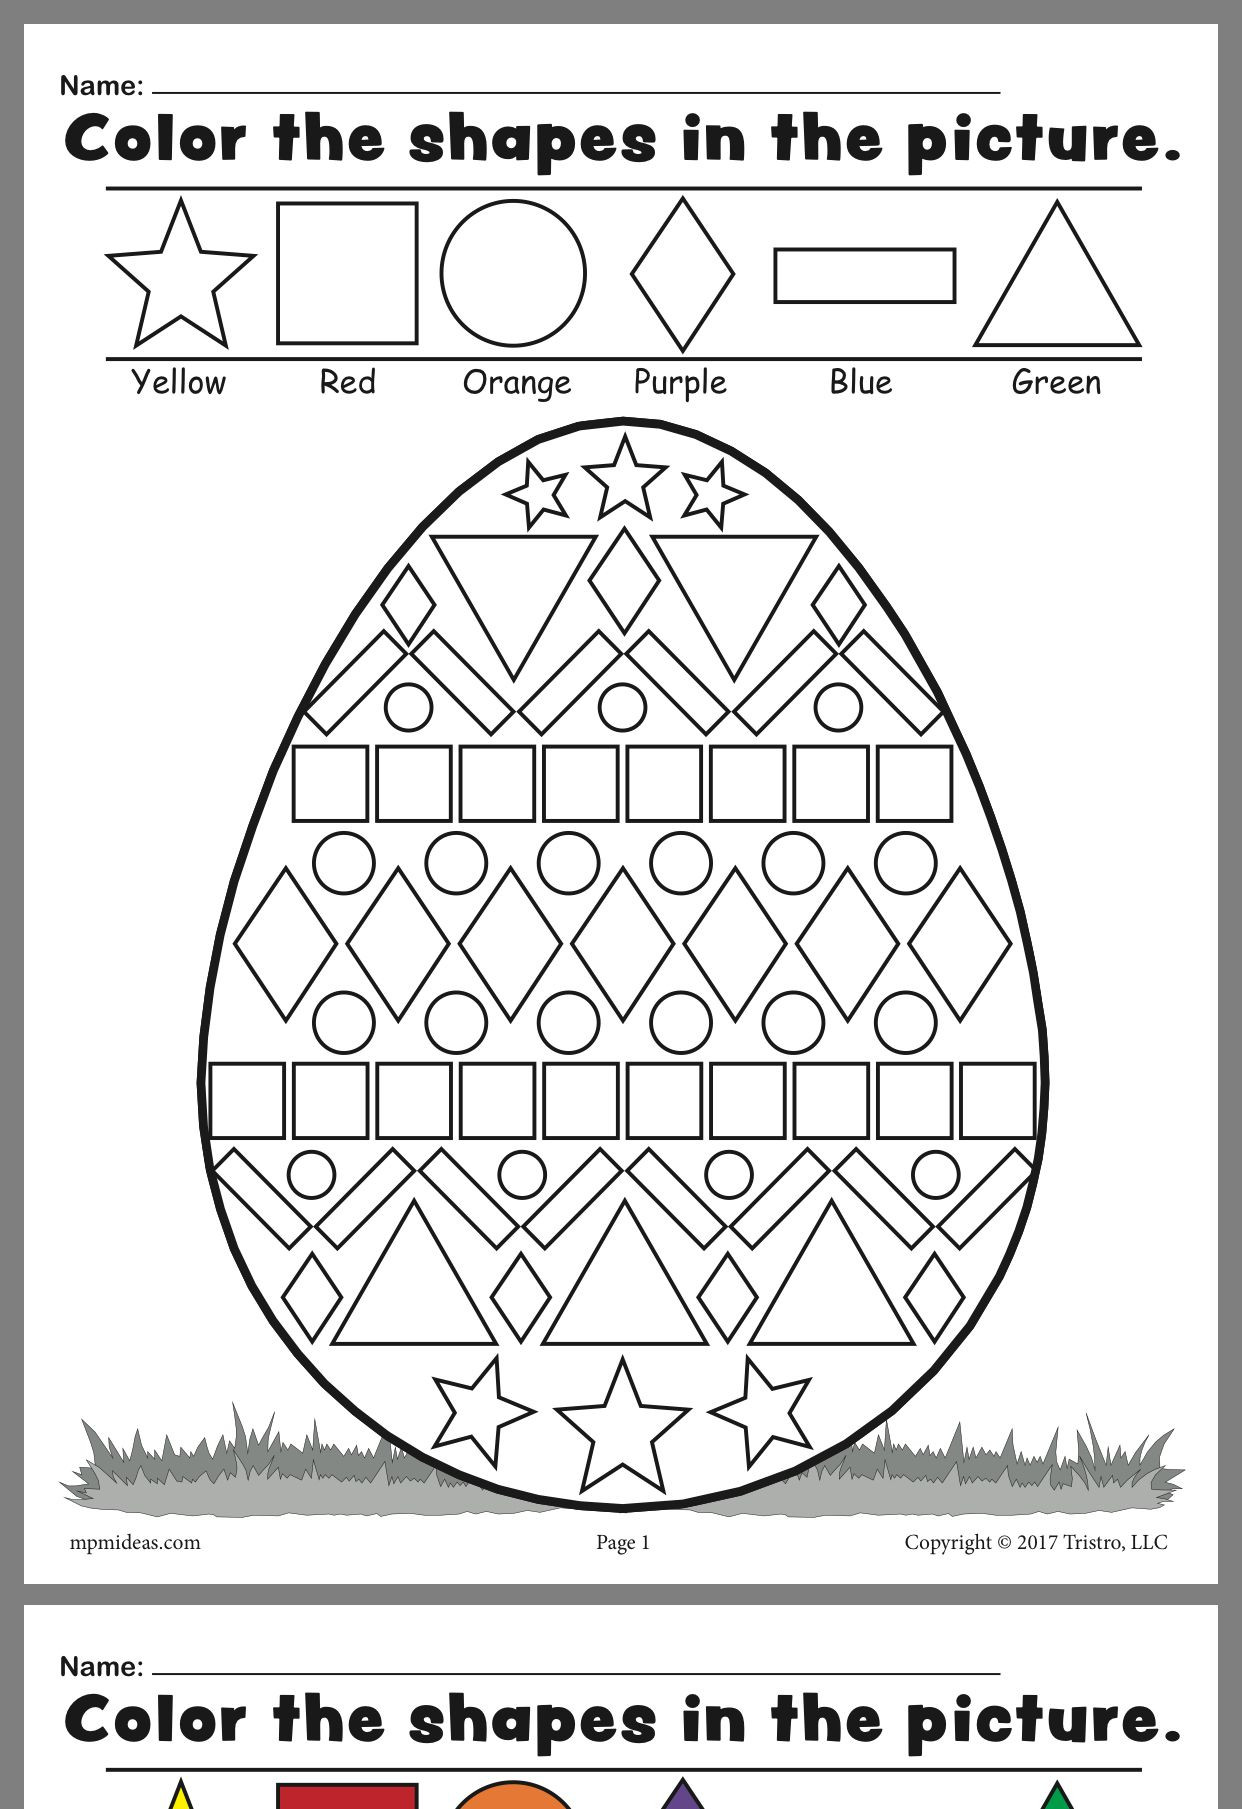 Preschool Diamond Shape Worksheets Here Fun Worksheet that You Can and Print for Free Diamond